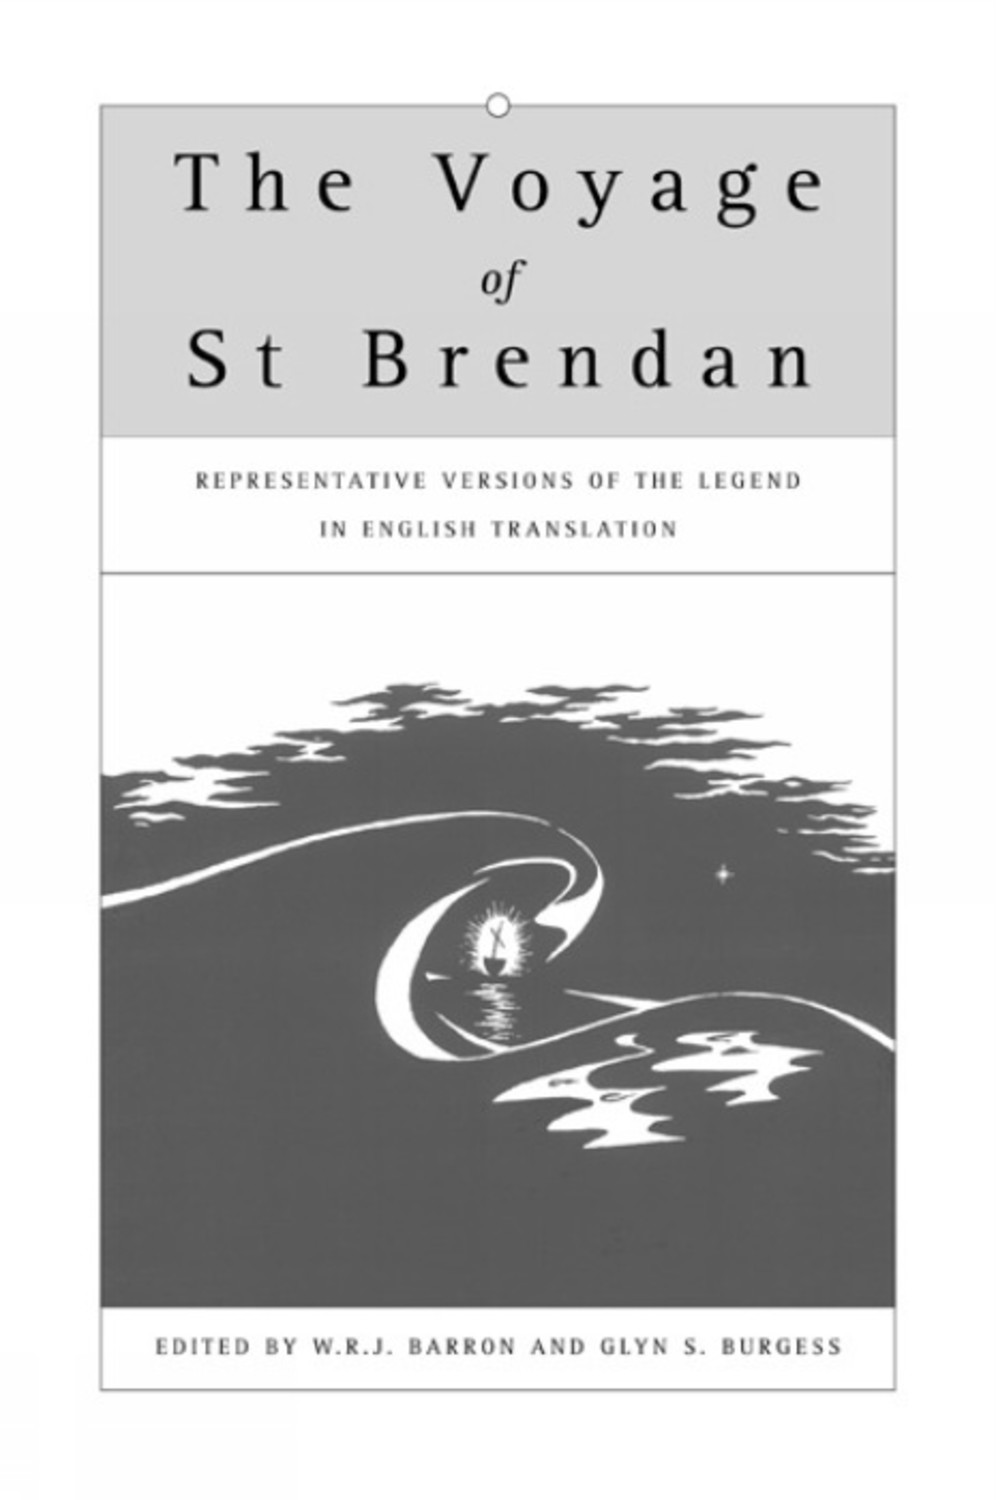 The voyage of st brendan liverpool university press the voyage of st brendan fandeluxe Image collections